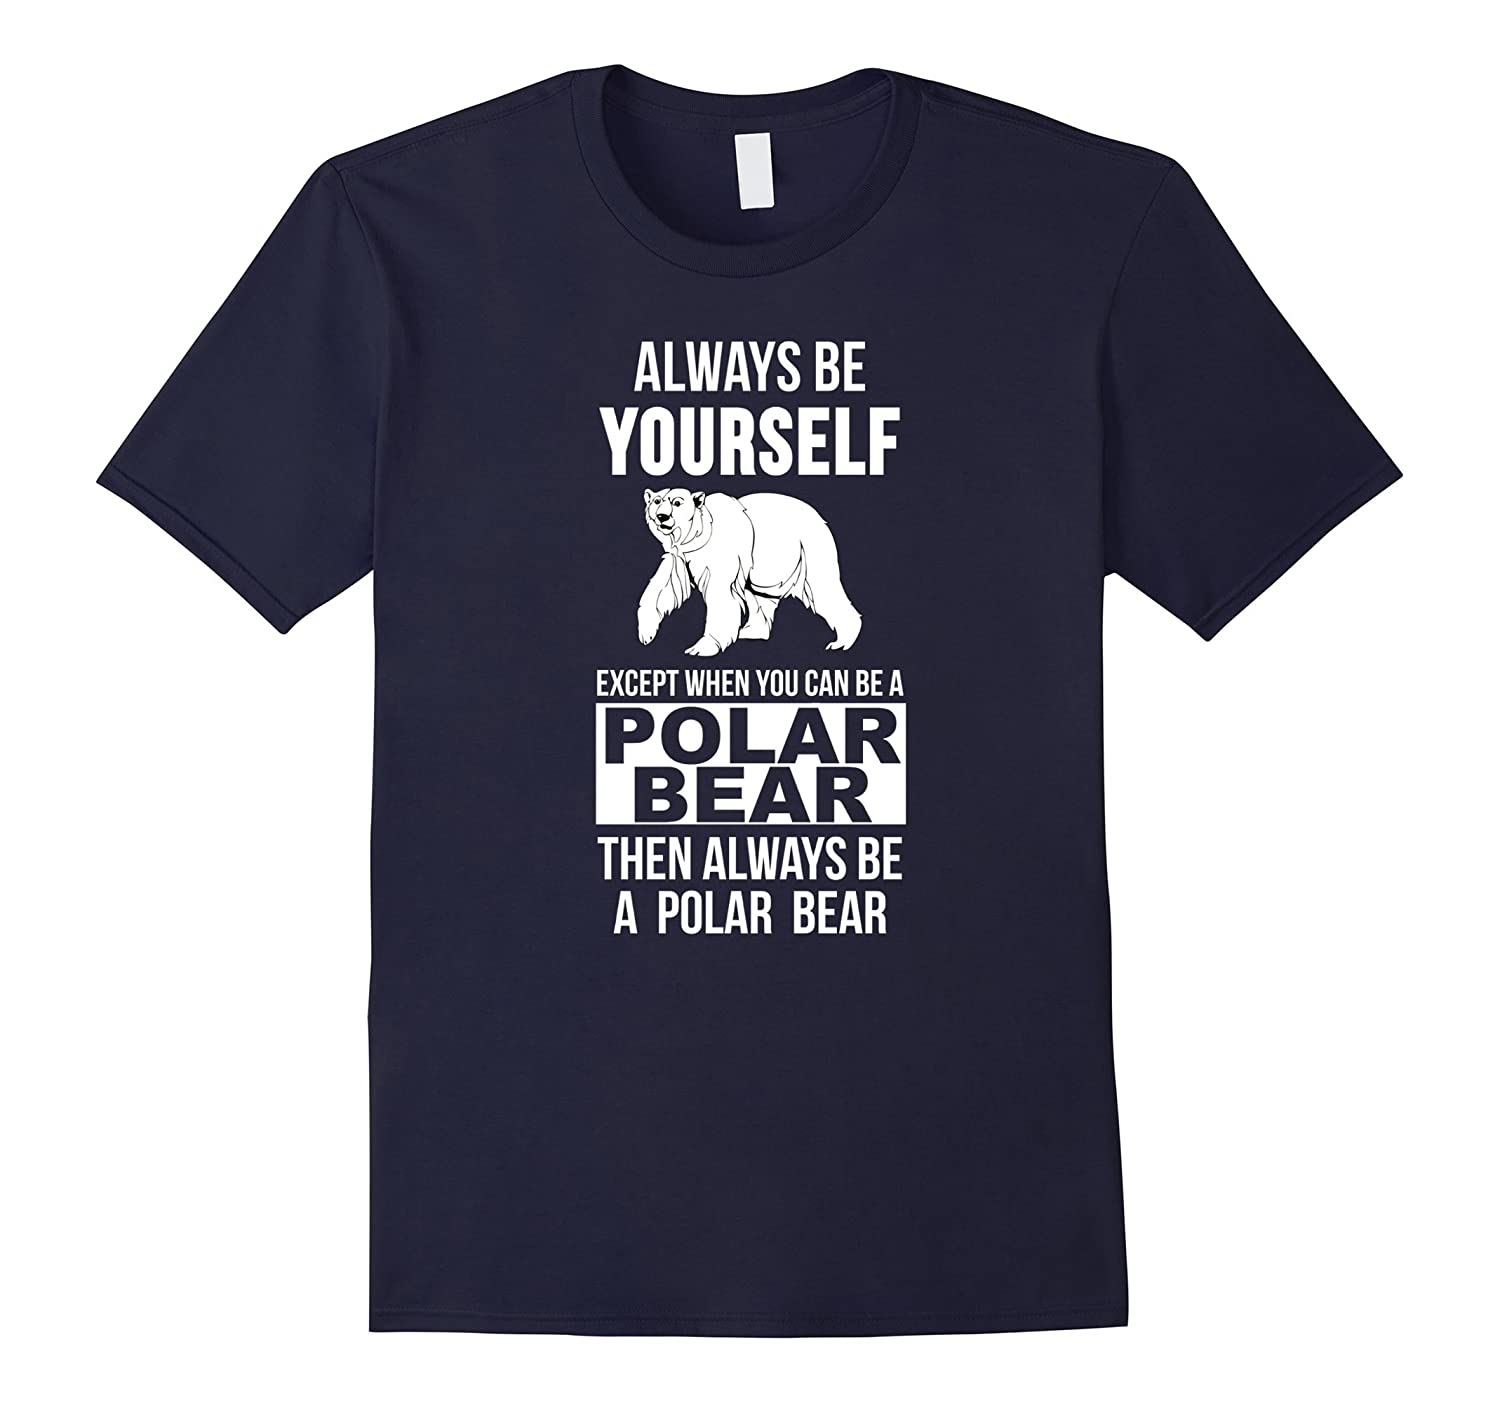 Always be yourself except when you can be polar bear t-shirt-TJ